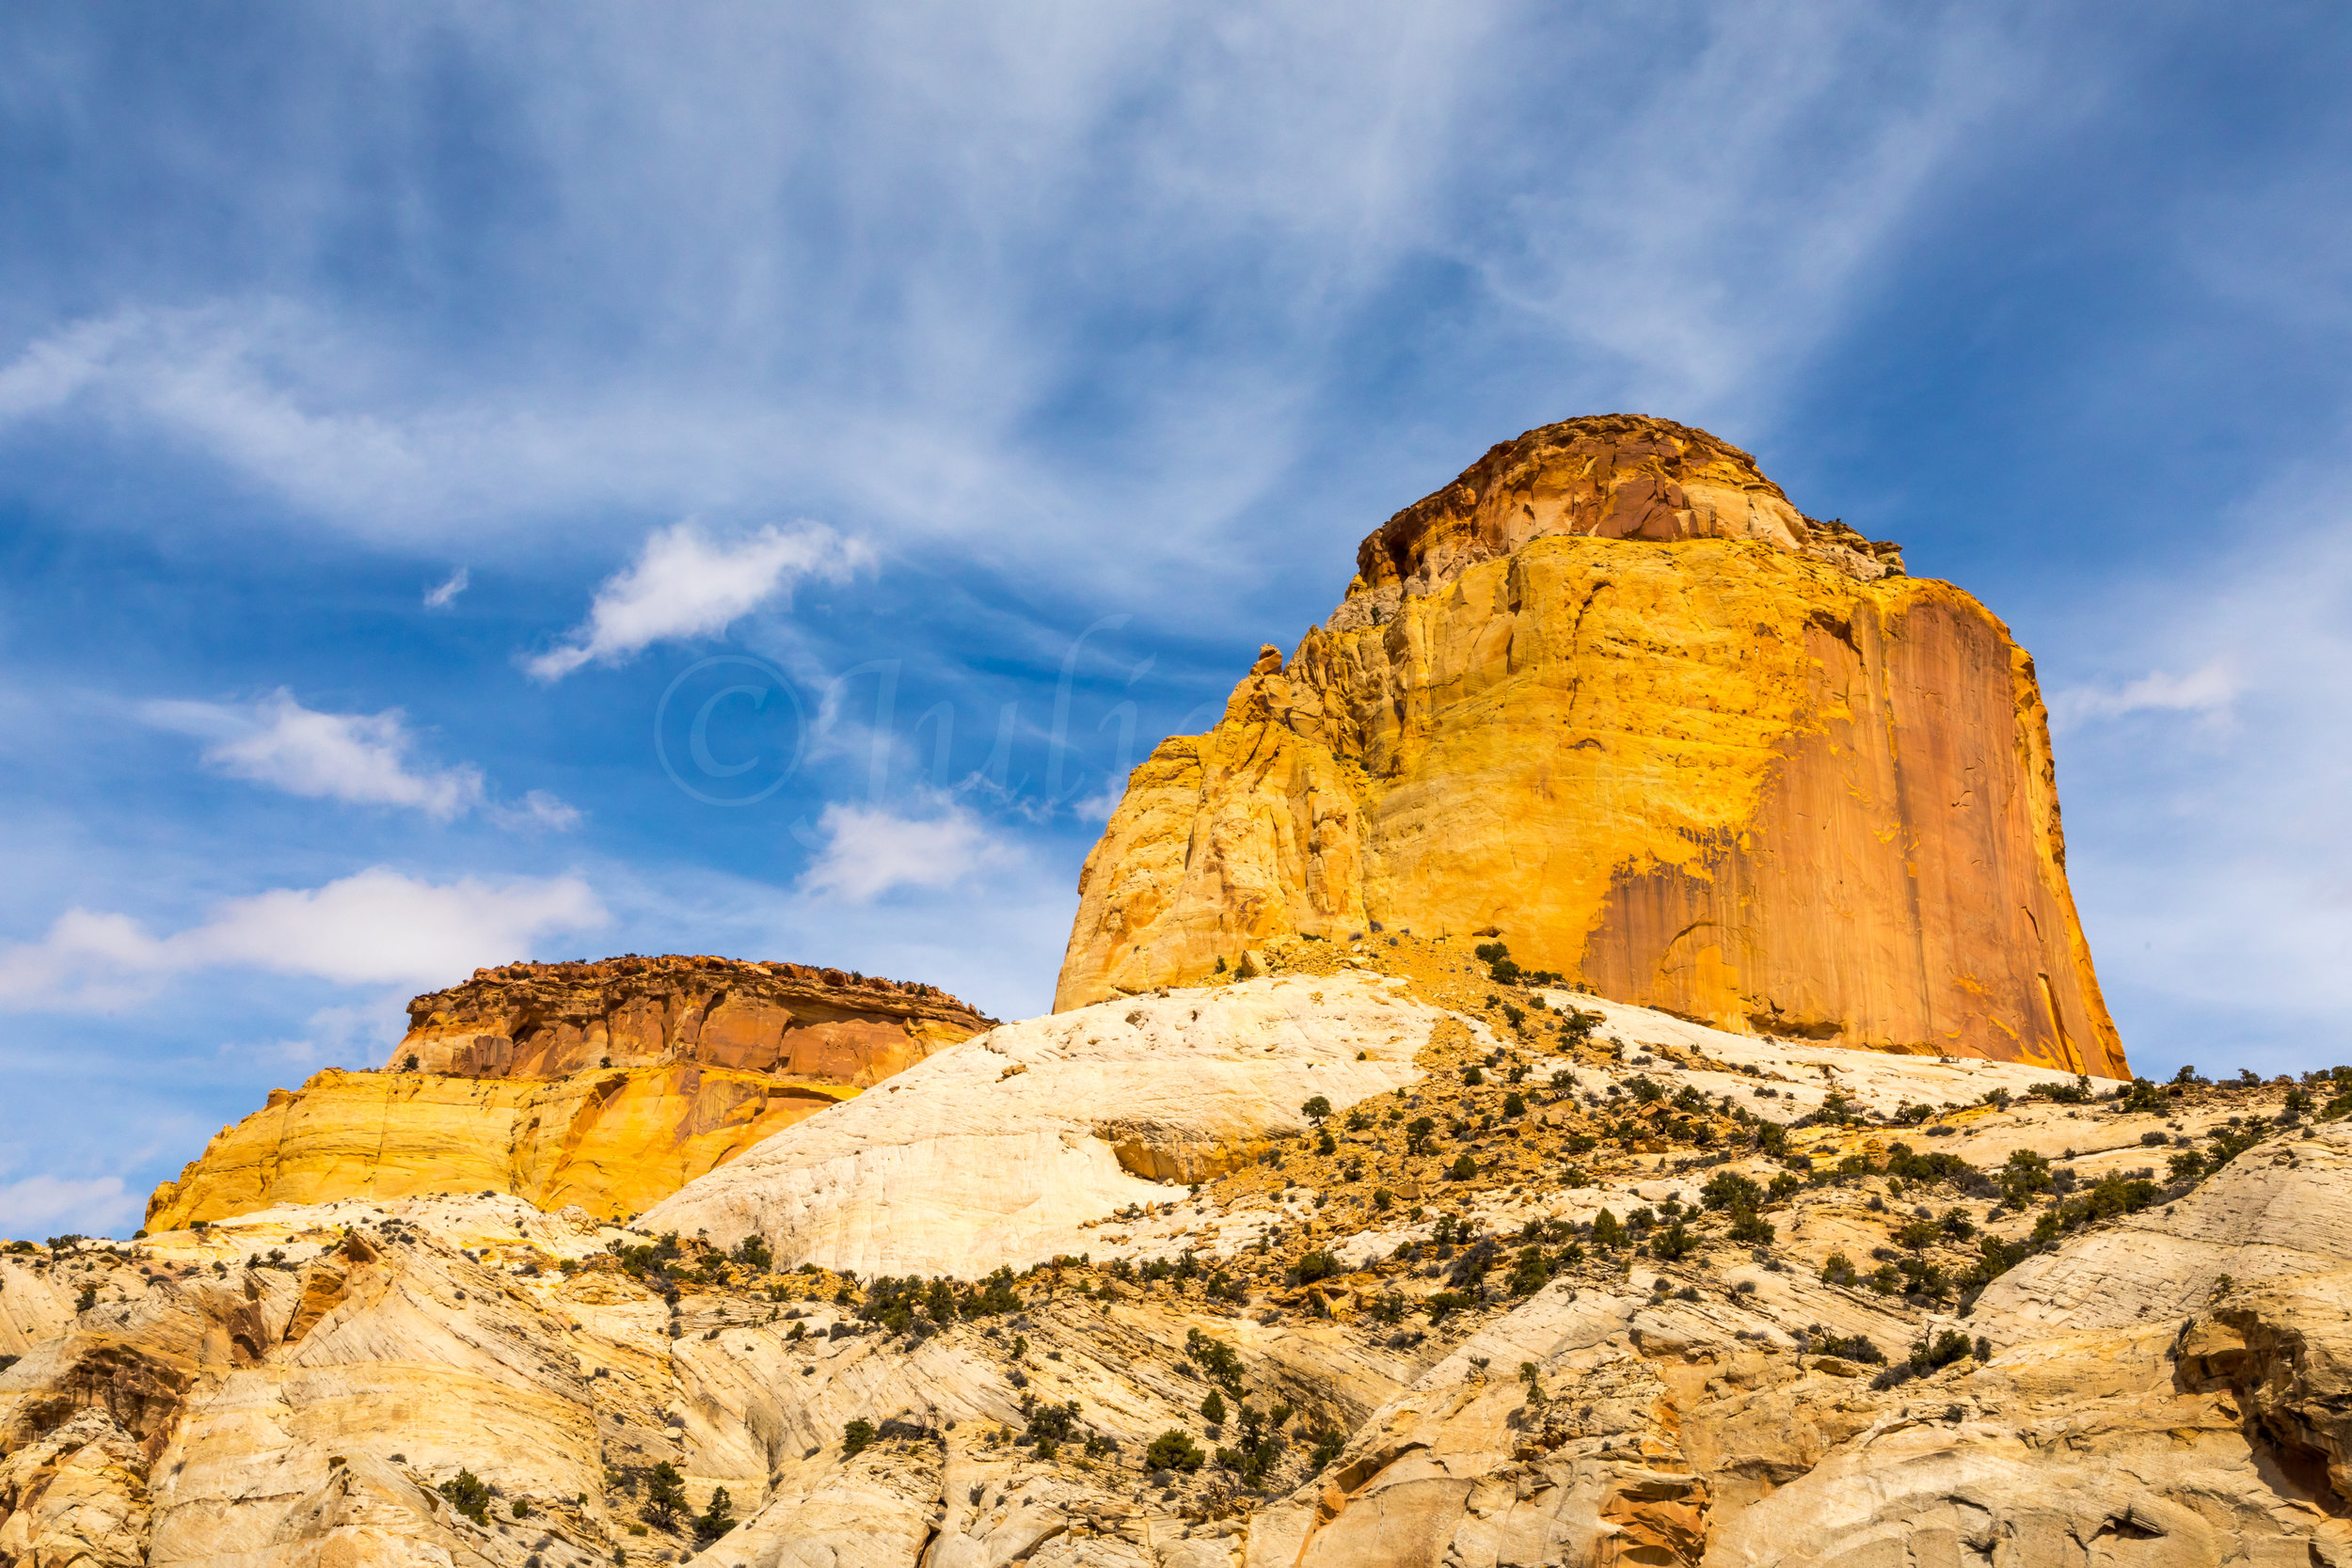 Capitol Reef National Park, Image # 1164